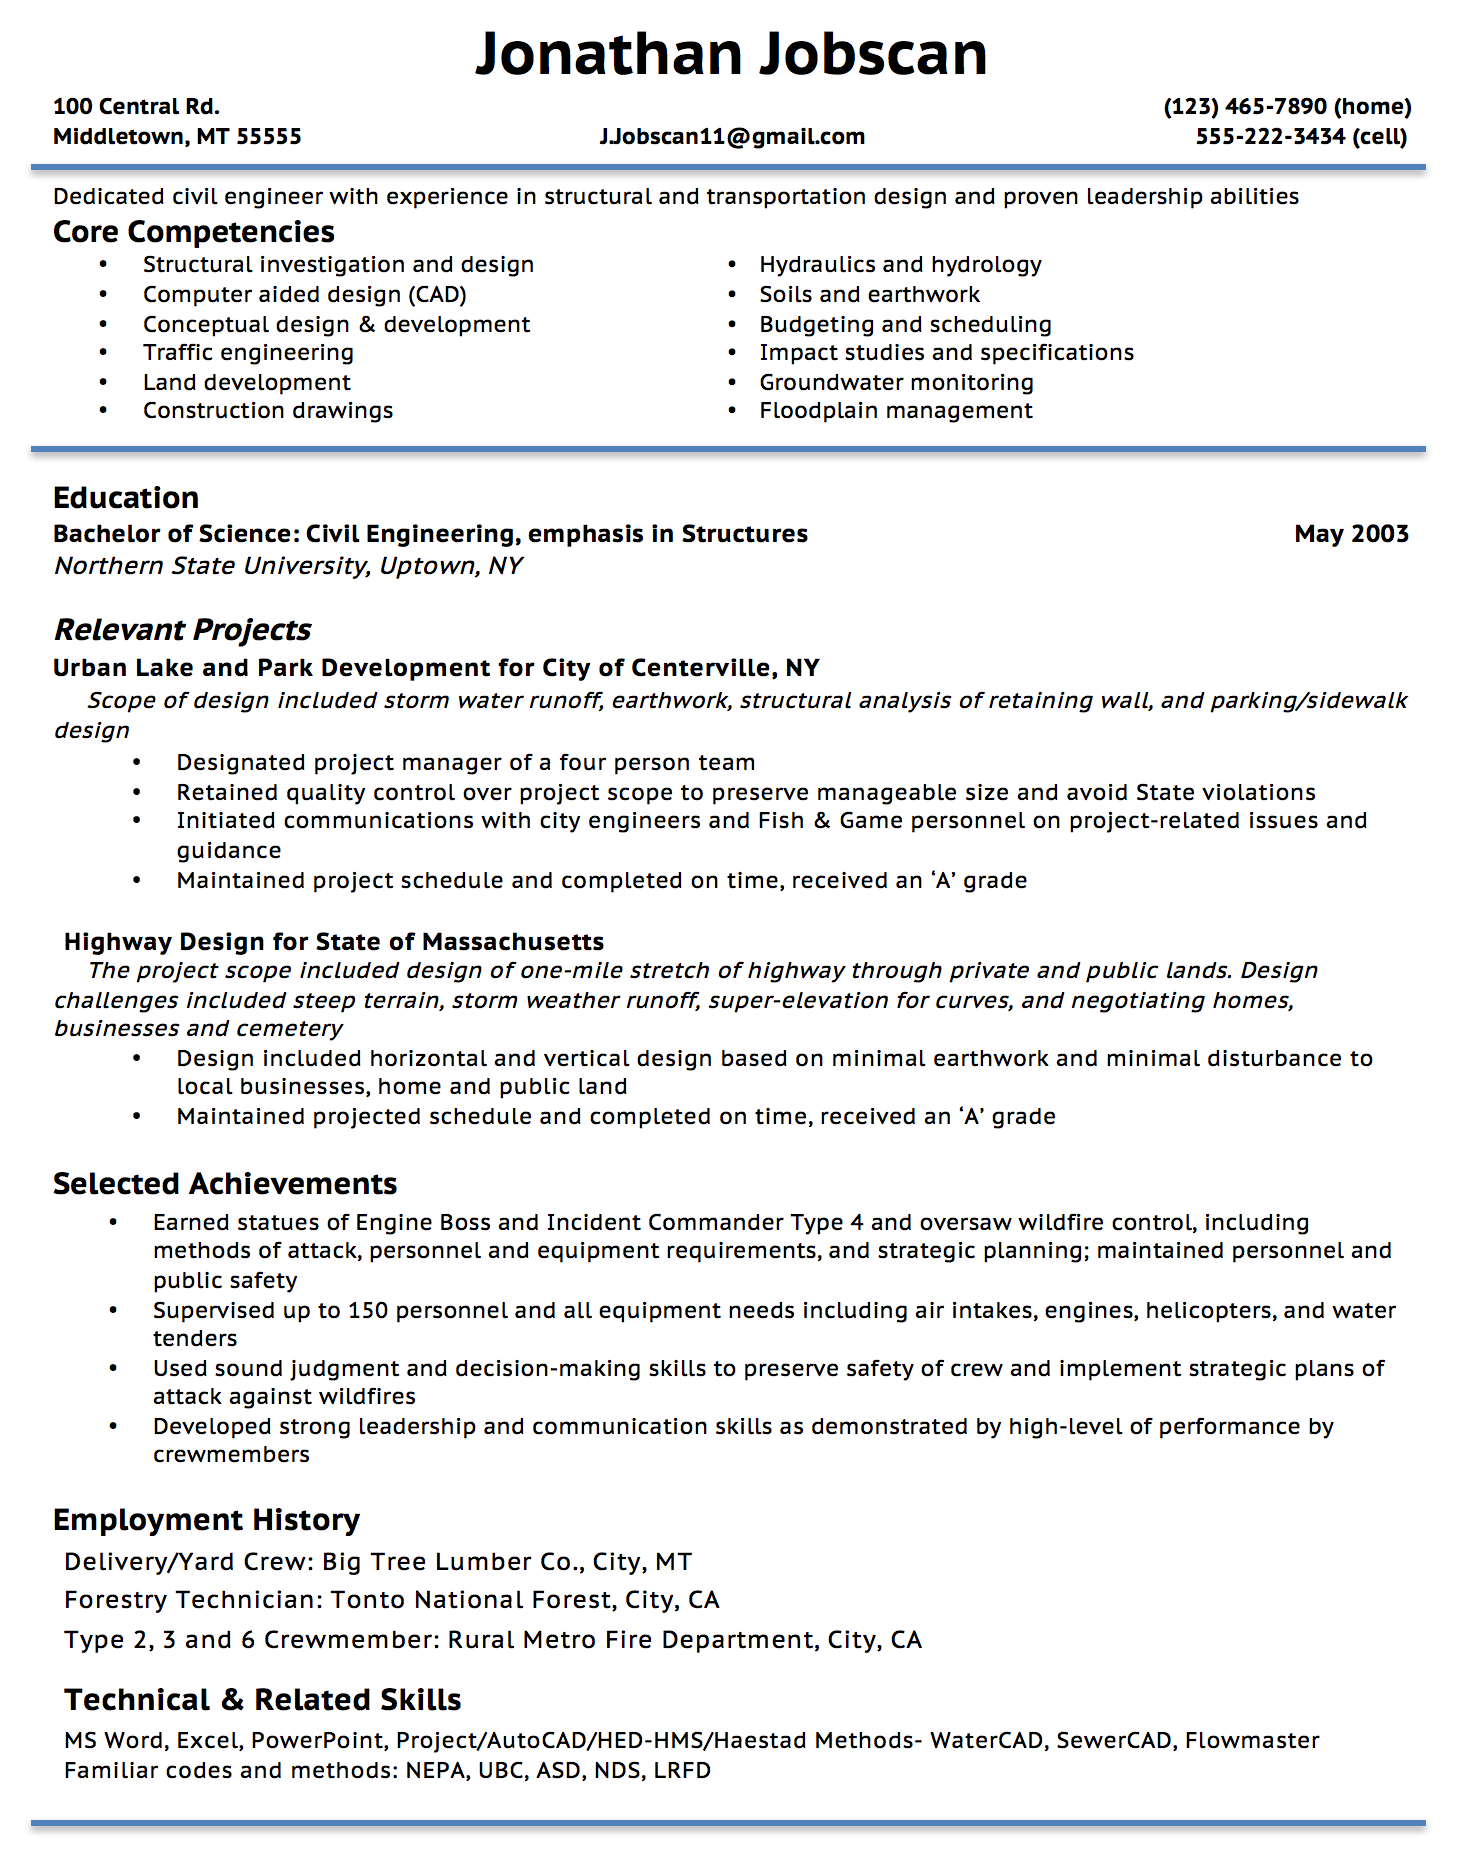 Opposenewapstandardsus  Winsome Resume Writing Guide  Jobscan With Outstanding Example Of A Functional Resume Format With Cool Example Cover Letters For Resume Also Resume Examples For Customer Service In Addition Best Resume Tips And Resume Strengths As Well As Objective For Resume Samples Additionally What Is The Objective In A Resume From Jobscanco With Opposenewapstandardsus  Outstanding Resume Writing Guide  Jobscan With Cool Example Of A Functional Resume Format And Winsome Example Cover Letters For Resume Also Resume Examples For Customer Service In Addition Best Resume Tips From Jobscanco